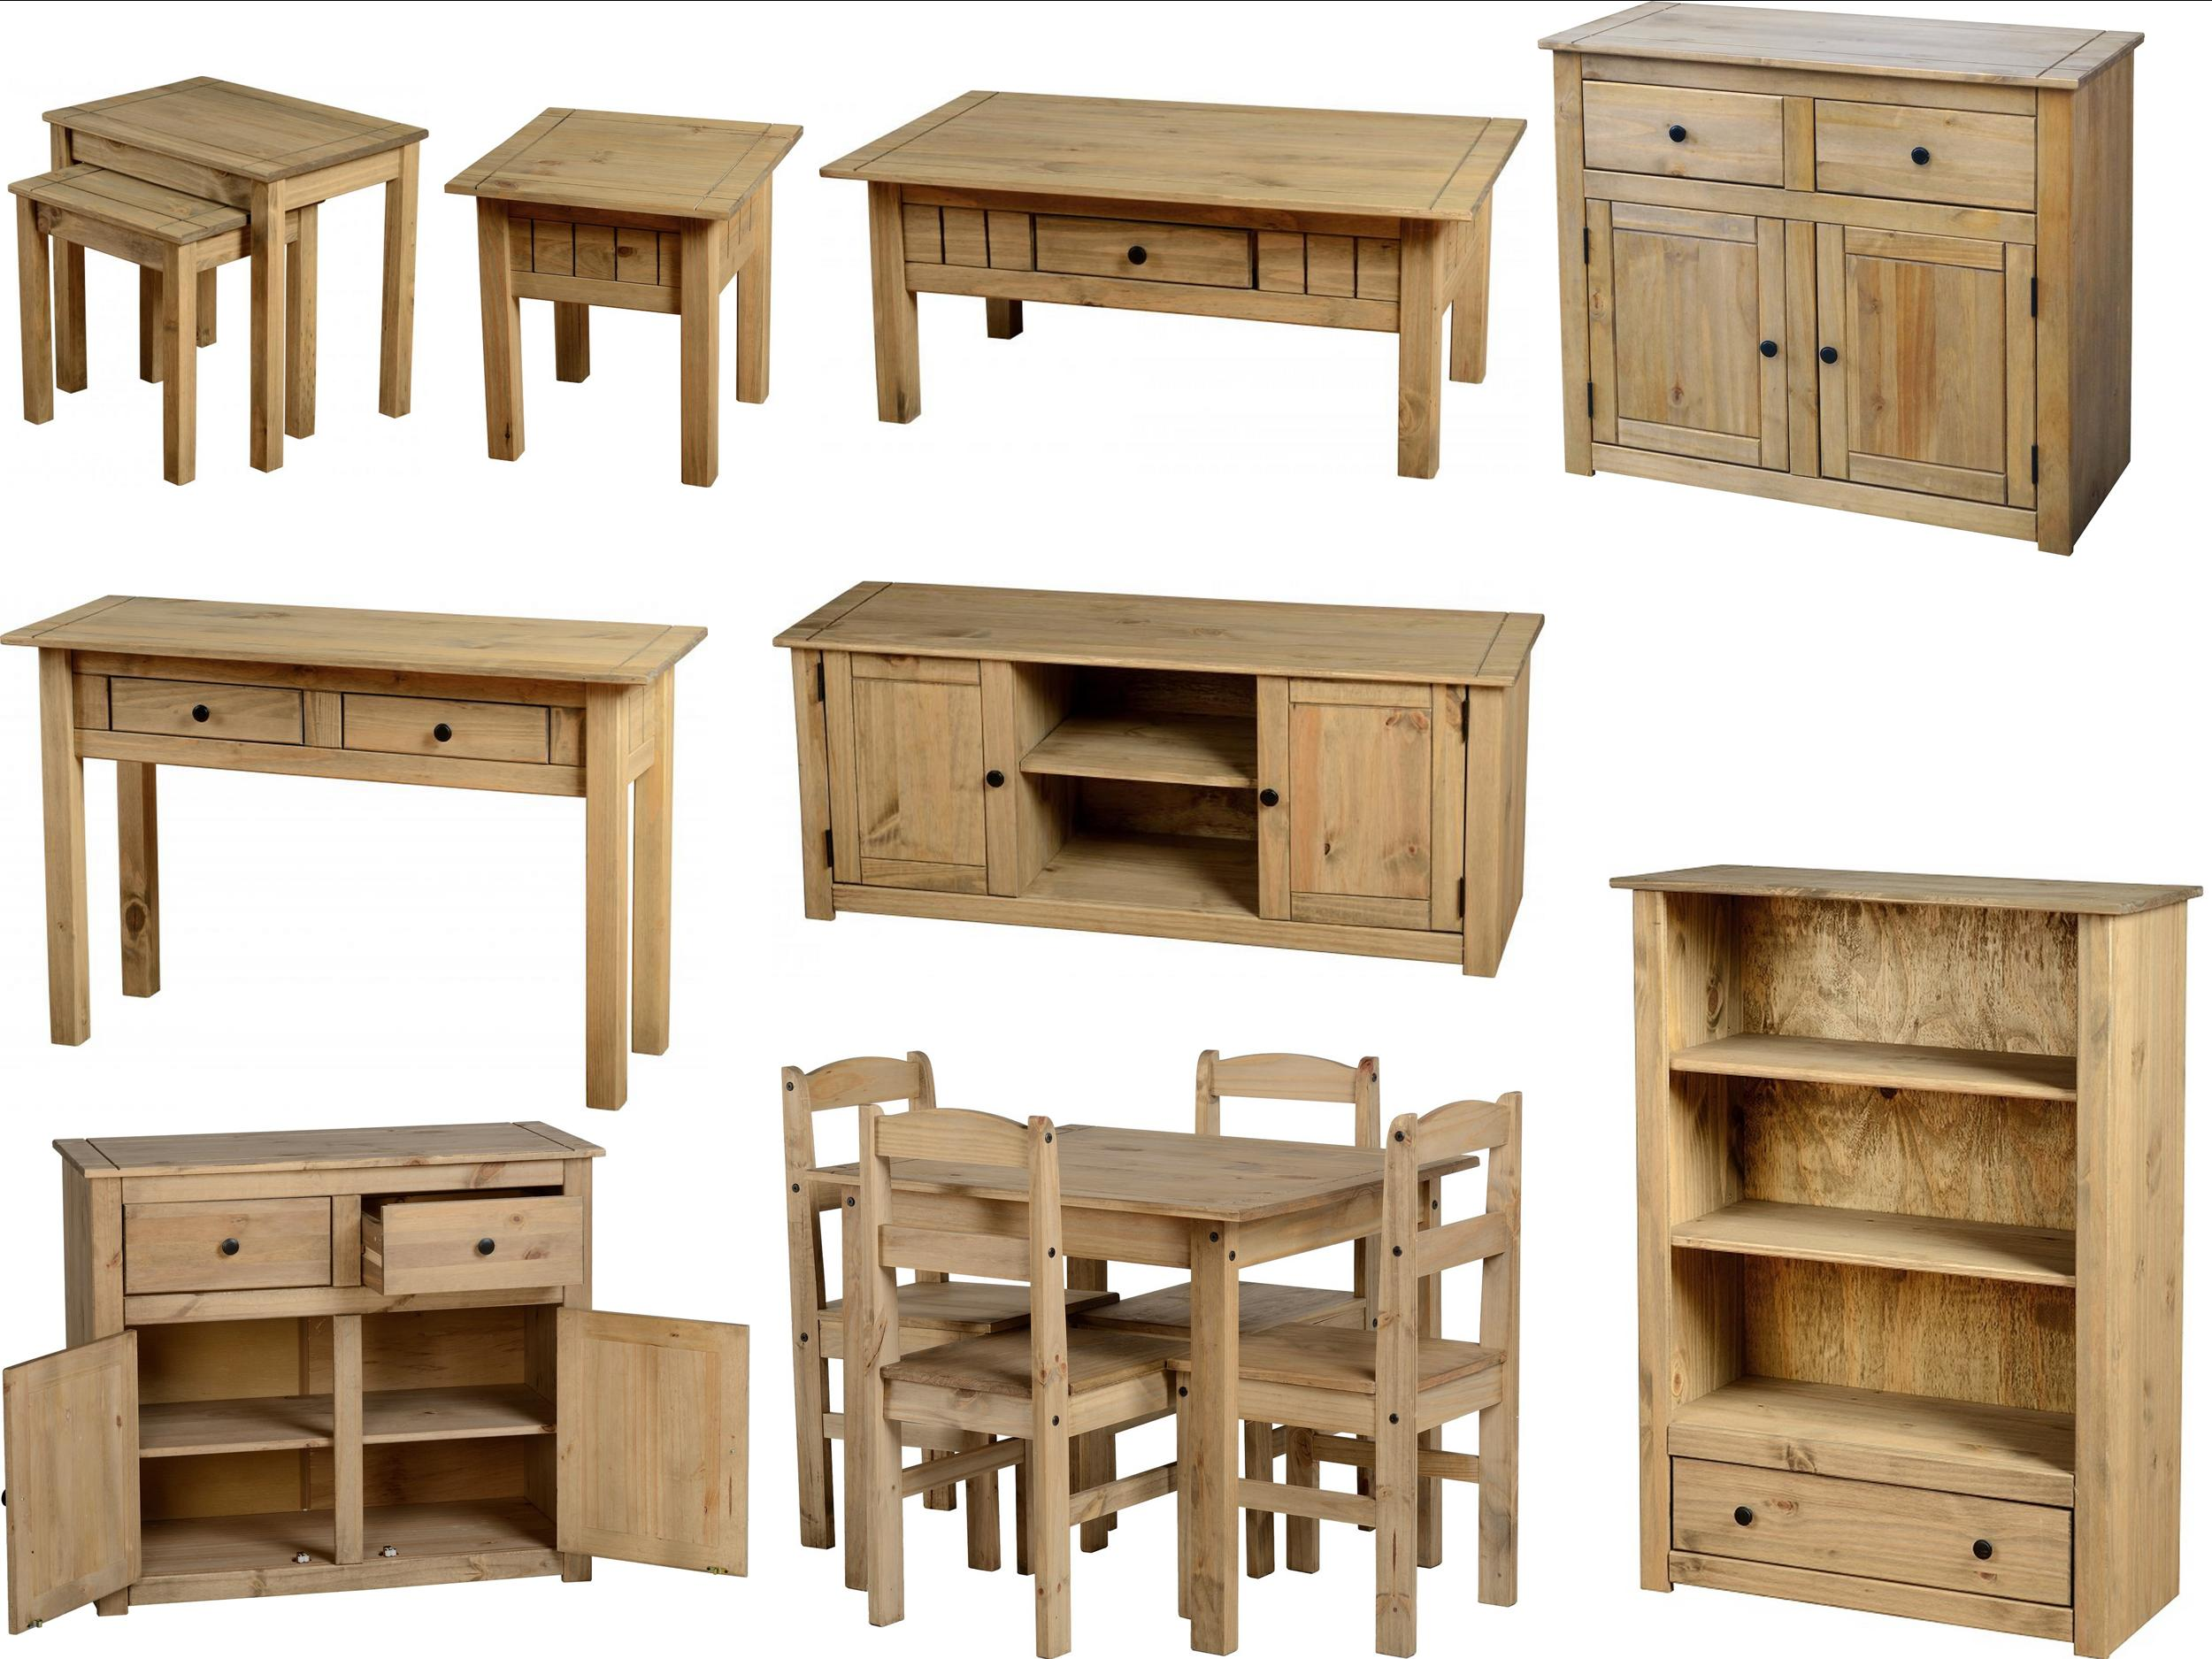 Details about panama mexican pine furniture dining set nest coffee tables bookcase sideboard